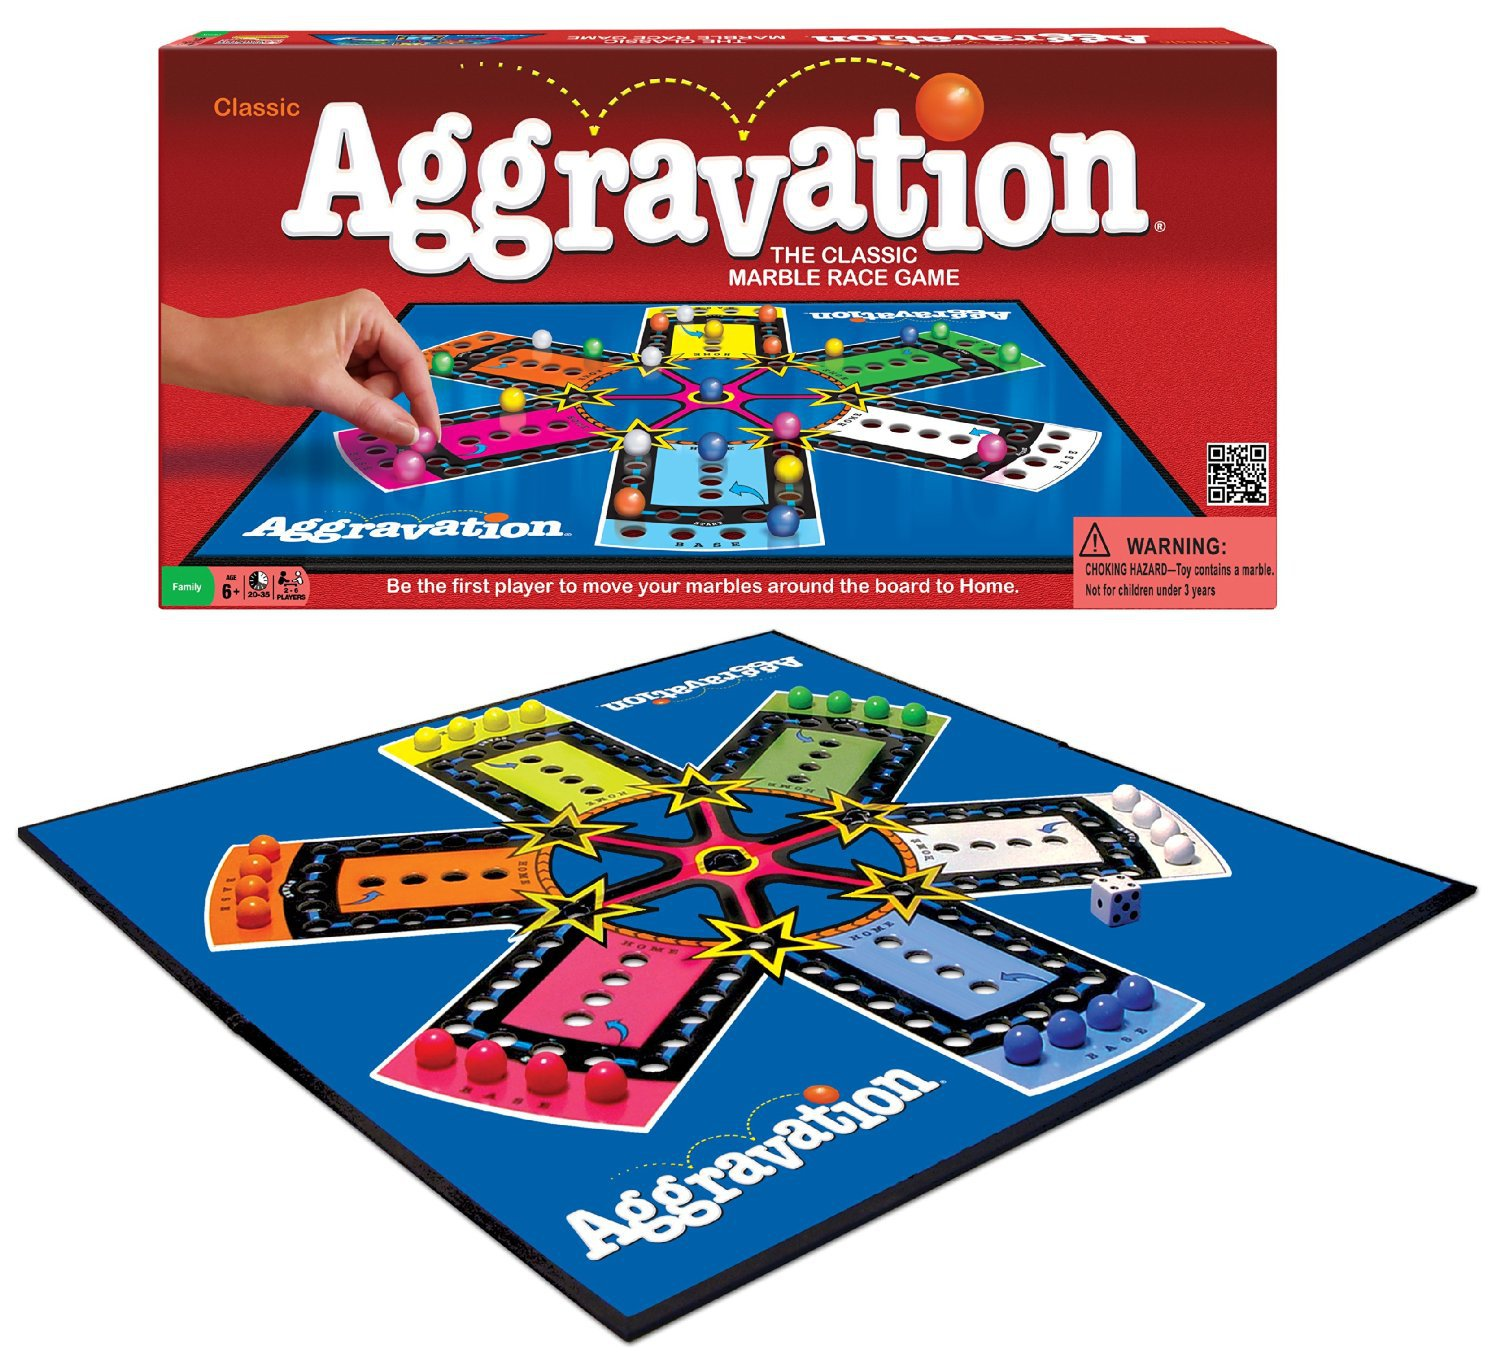 Primary image for AGGRAVATION BOARD GAME CLASSIC MARBLE RACE FAMILY BOARDGAME PARKER BROTHERS